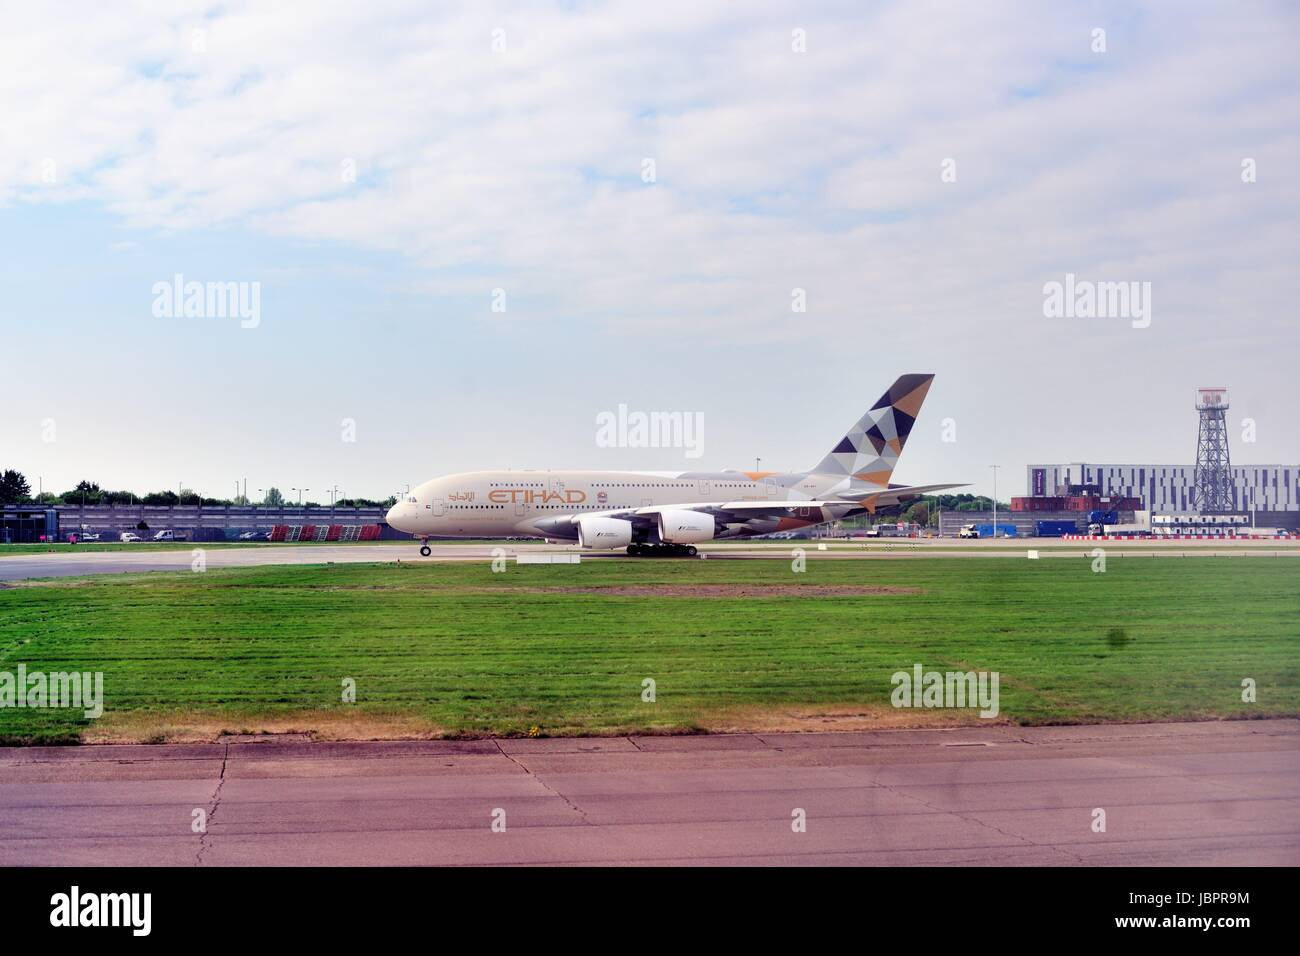 An Etihad Airways jet taking off at London's Heathrow International Airport one of the busiest airports in the - Stock Image